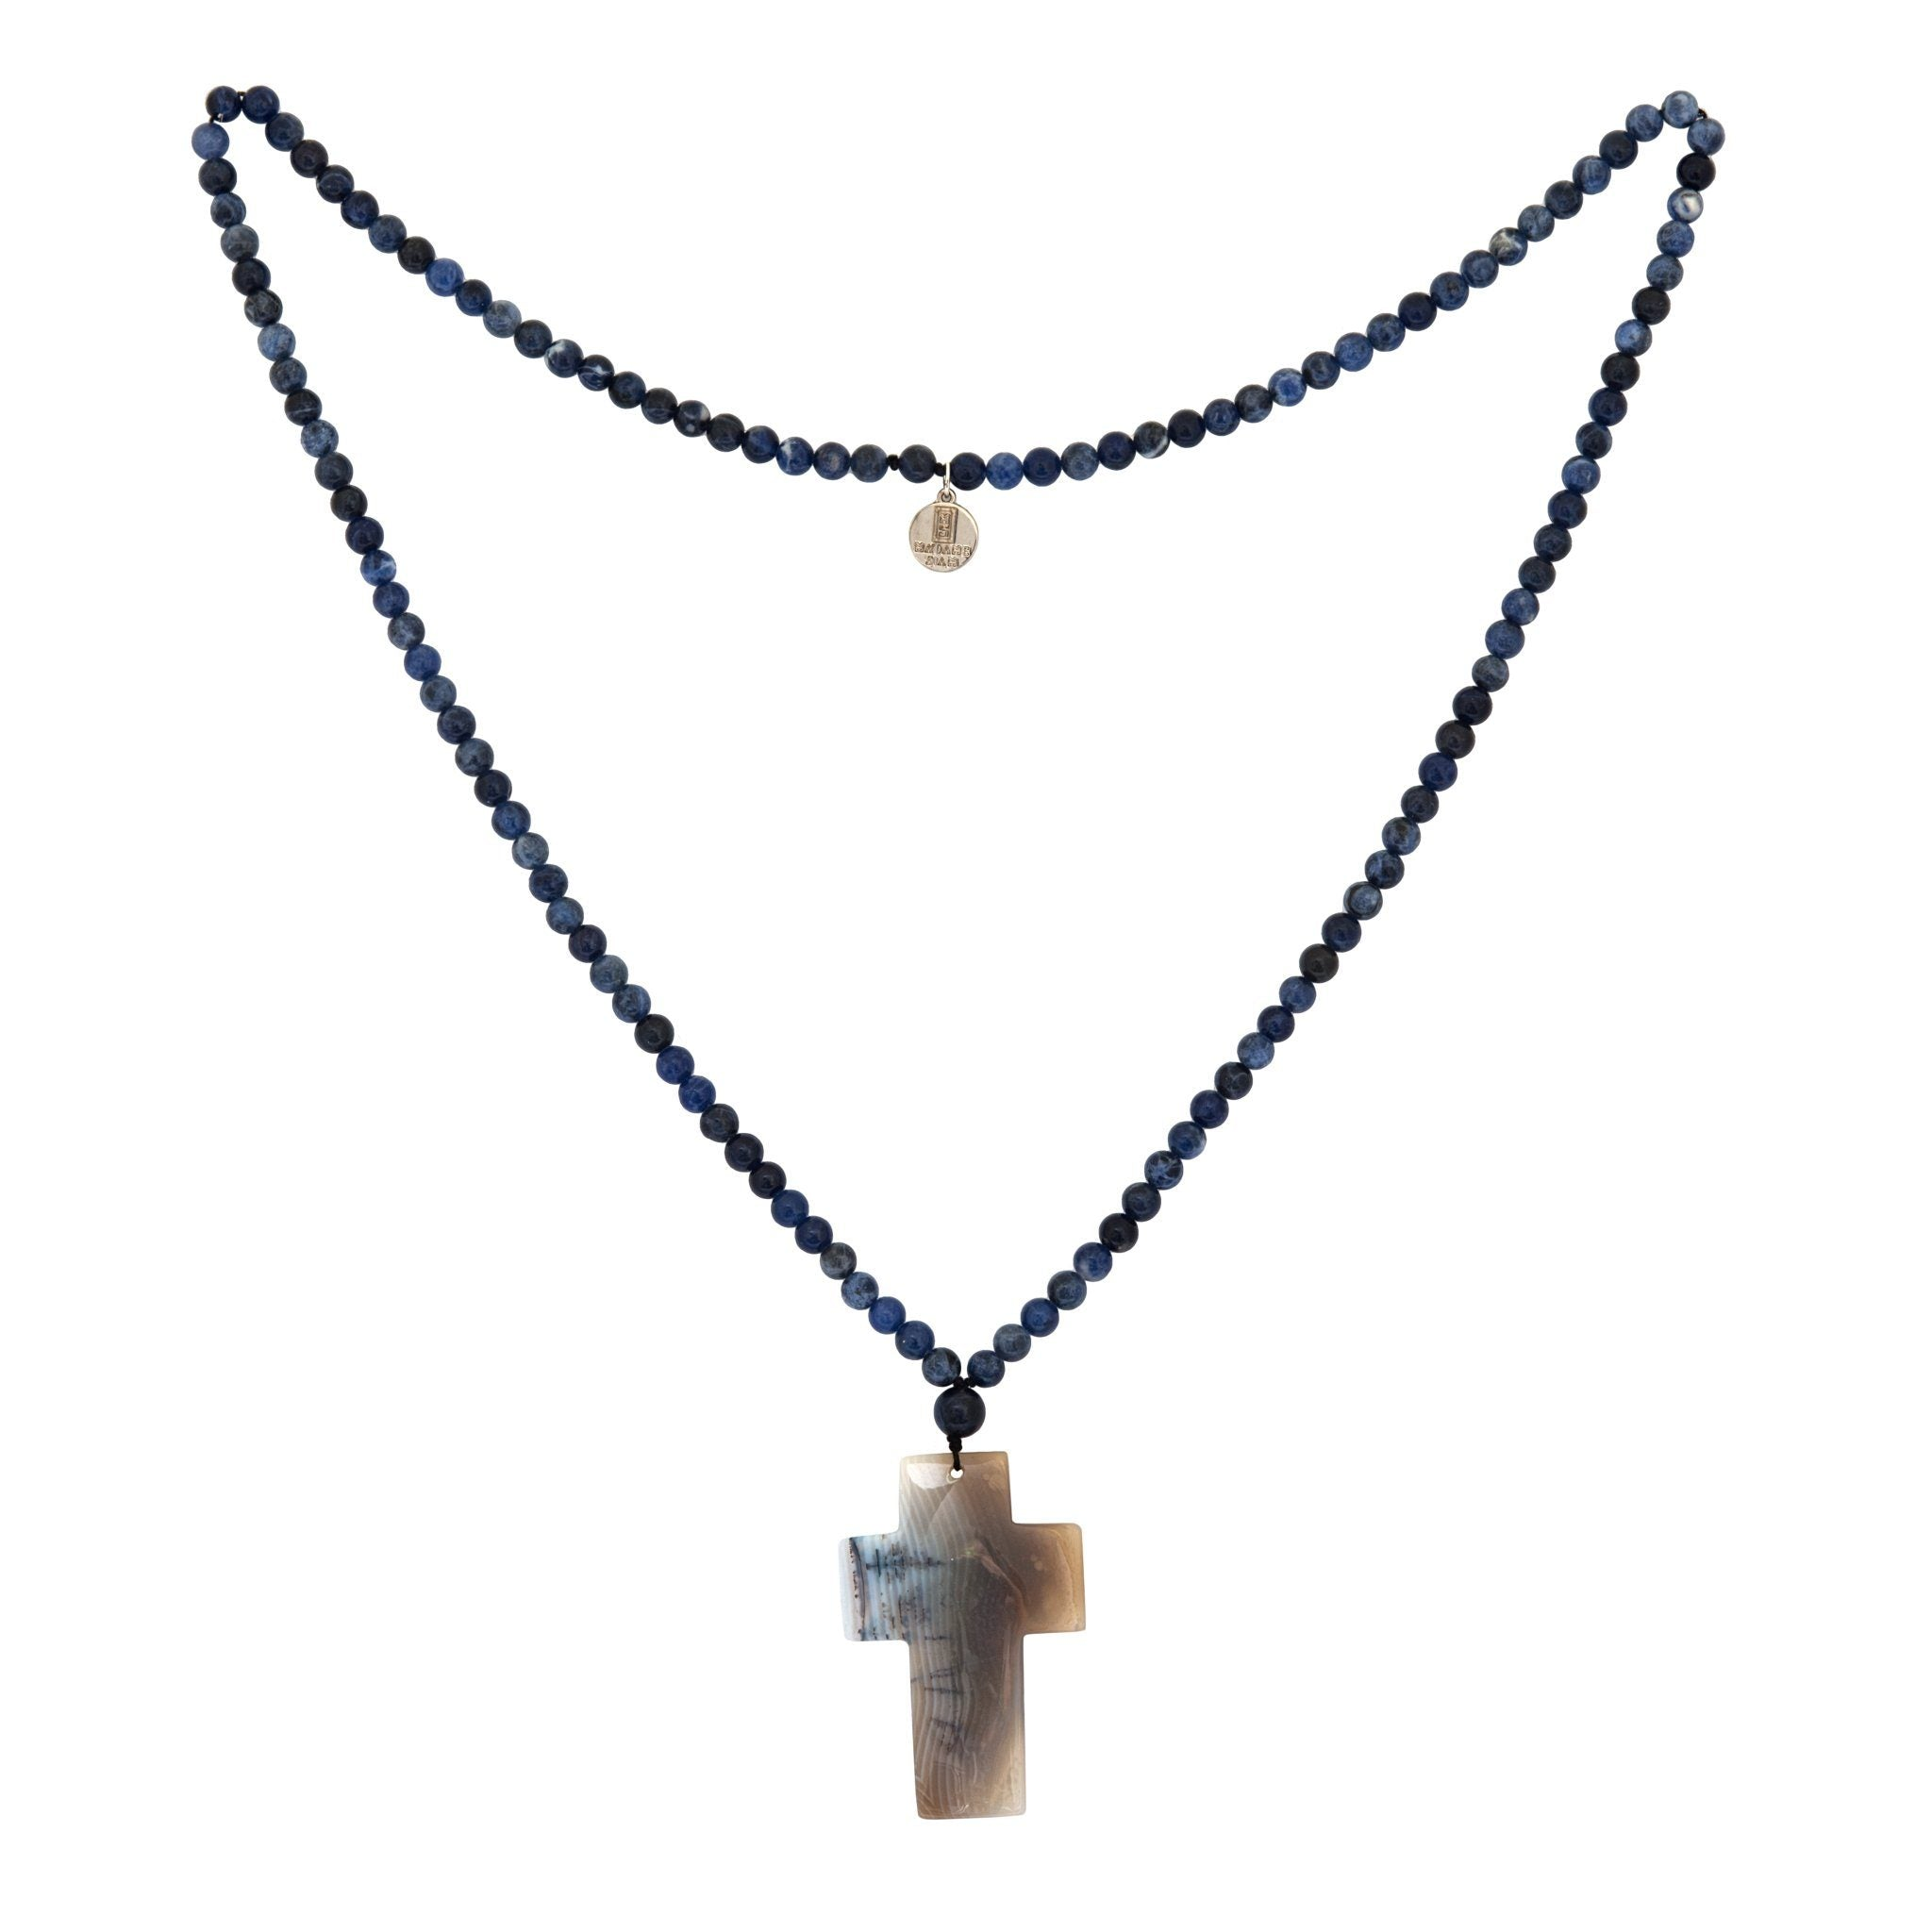 BAHIA iolite cross necklace - MadamSiam